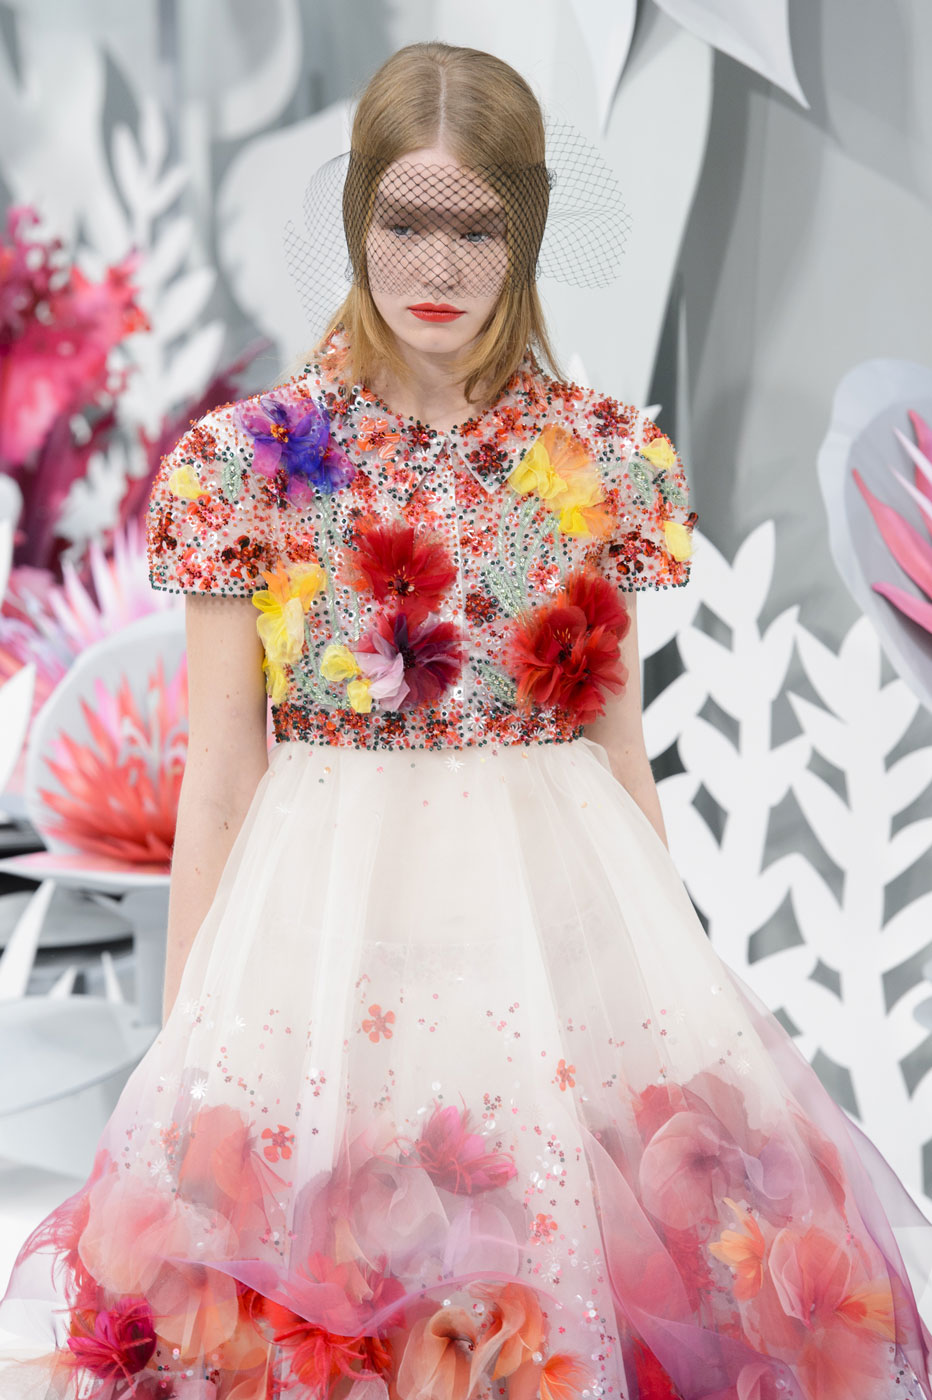 Chanel-fashion-runway-show-haute-couture-paris-spring-summer-2015-the-impression-100